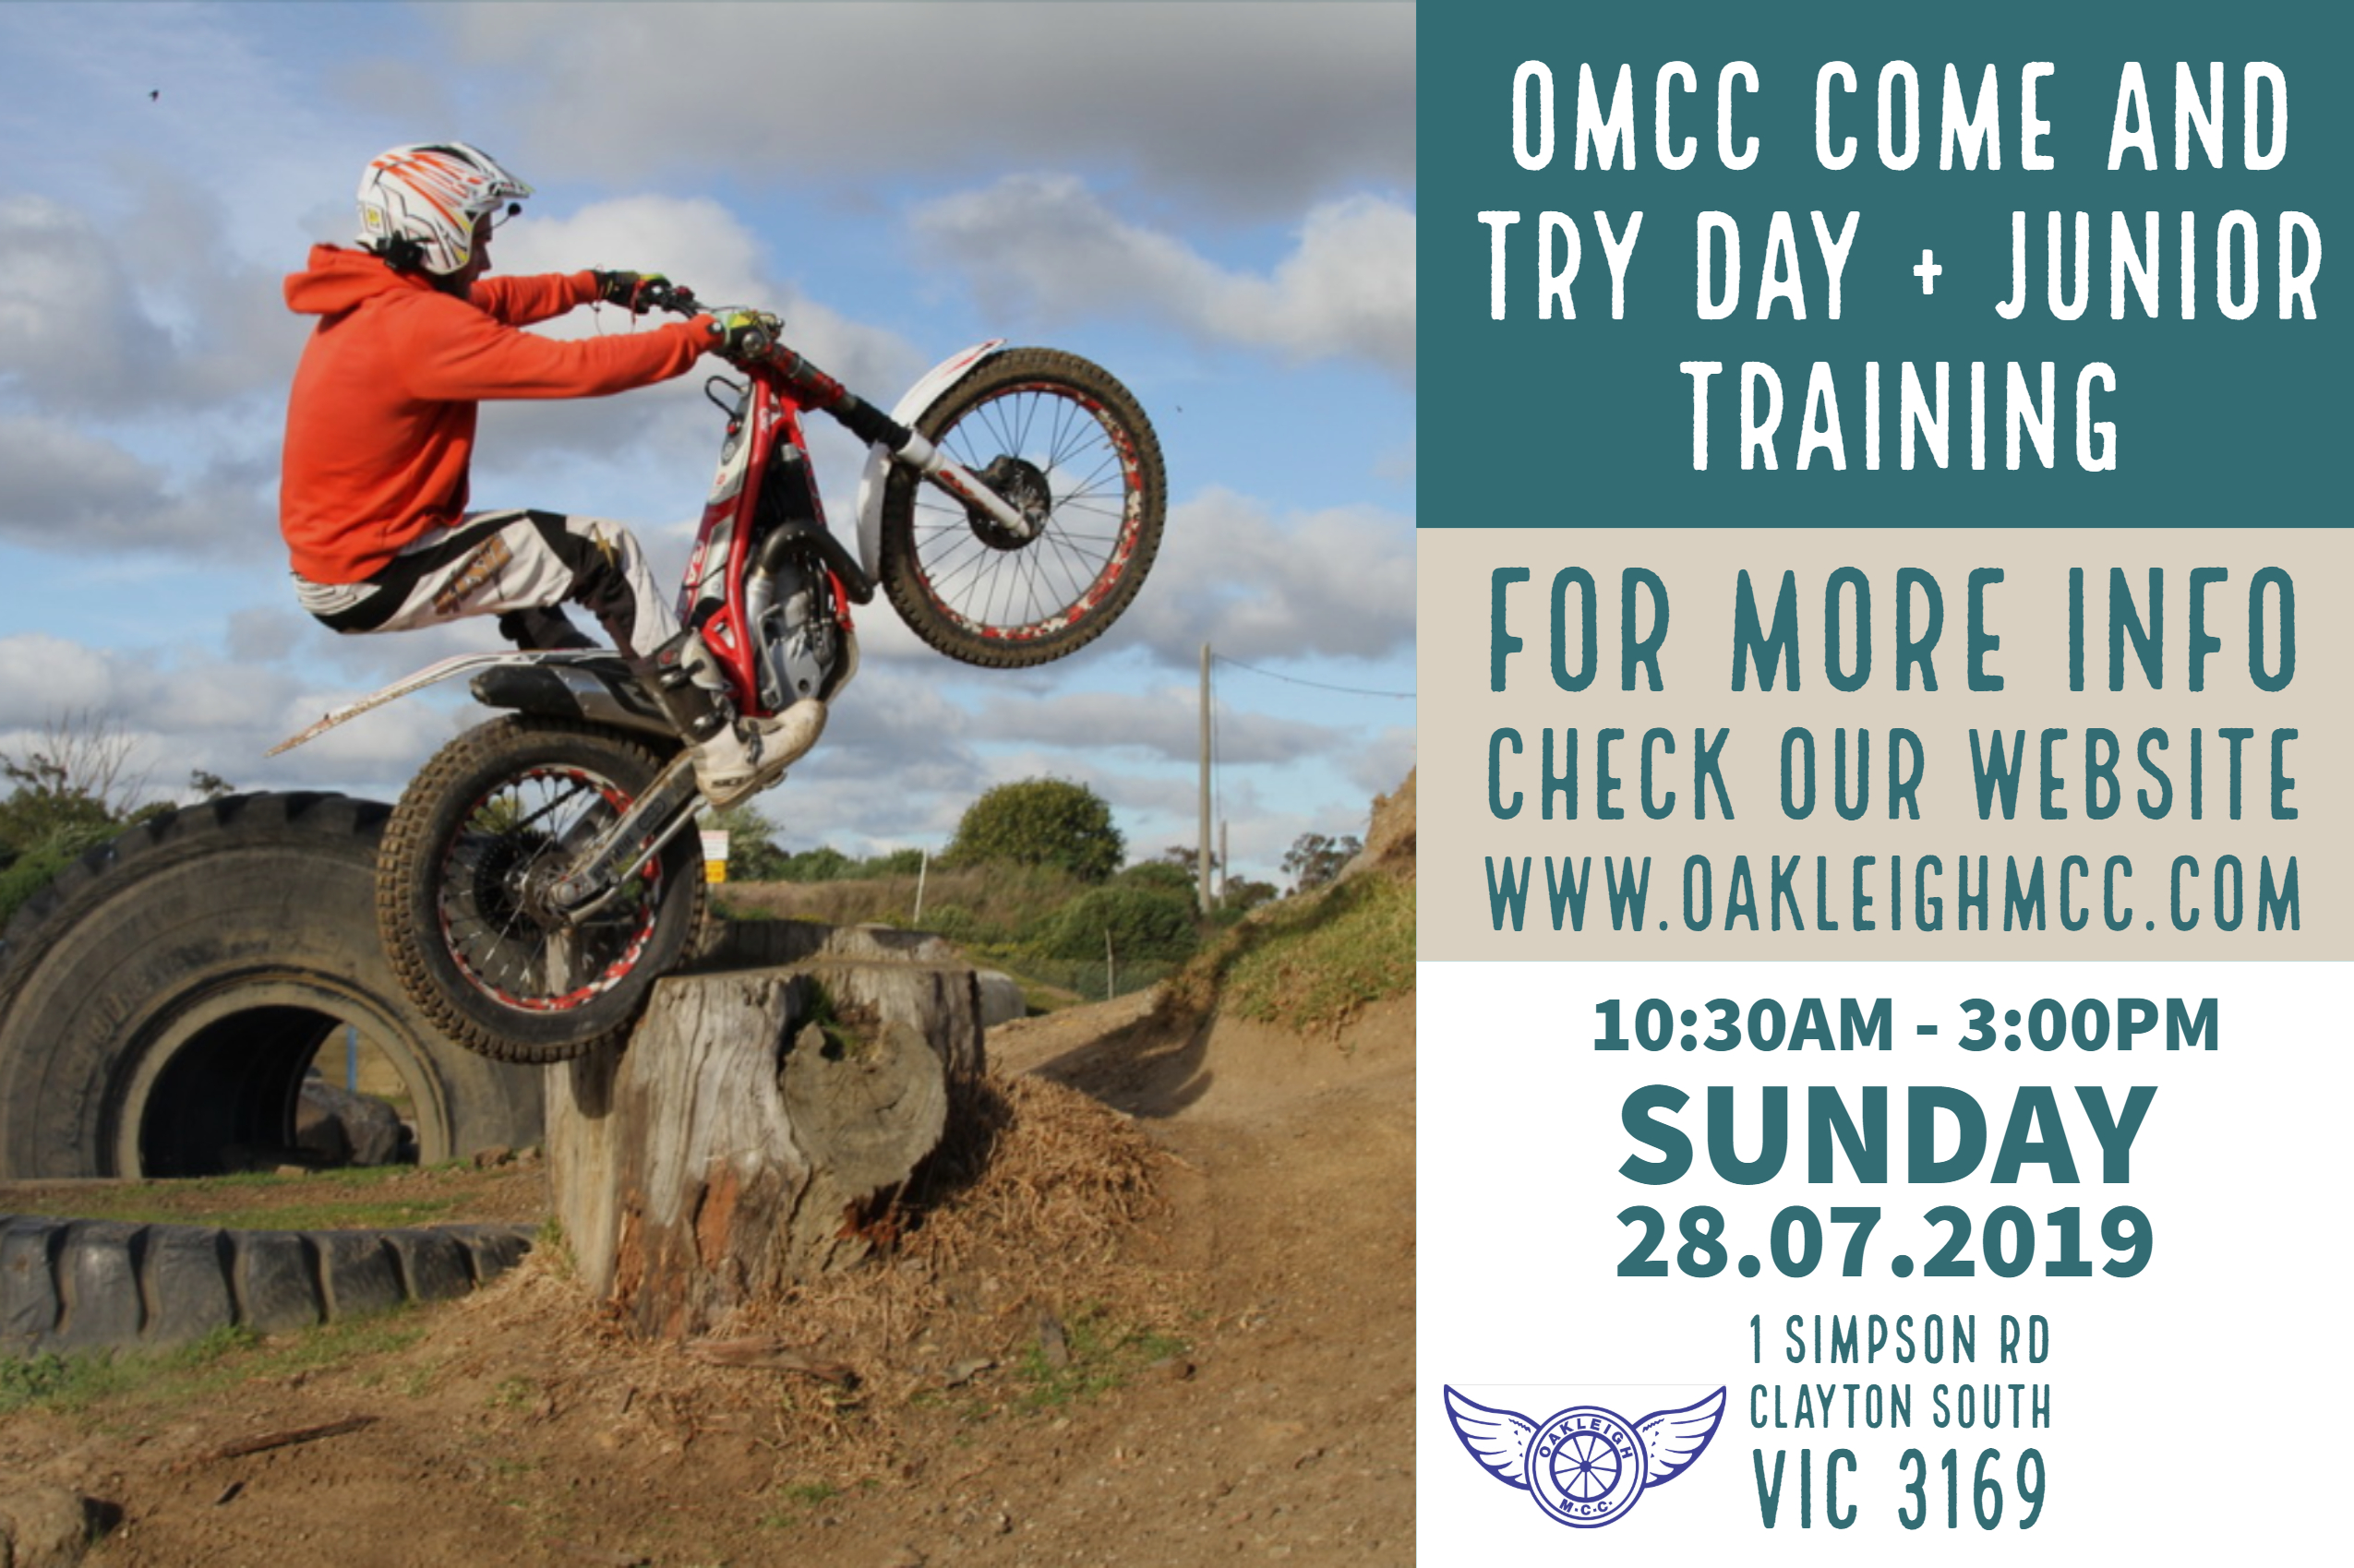 OMCC COME AND TRY DAY – 28.07.2019